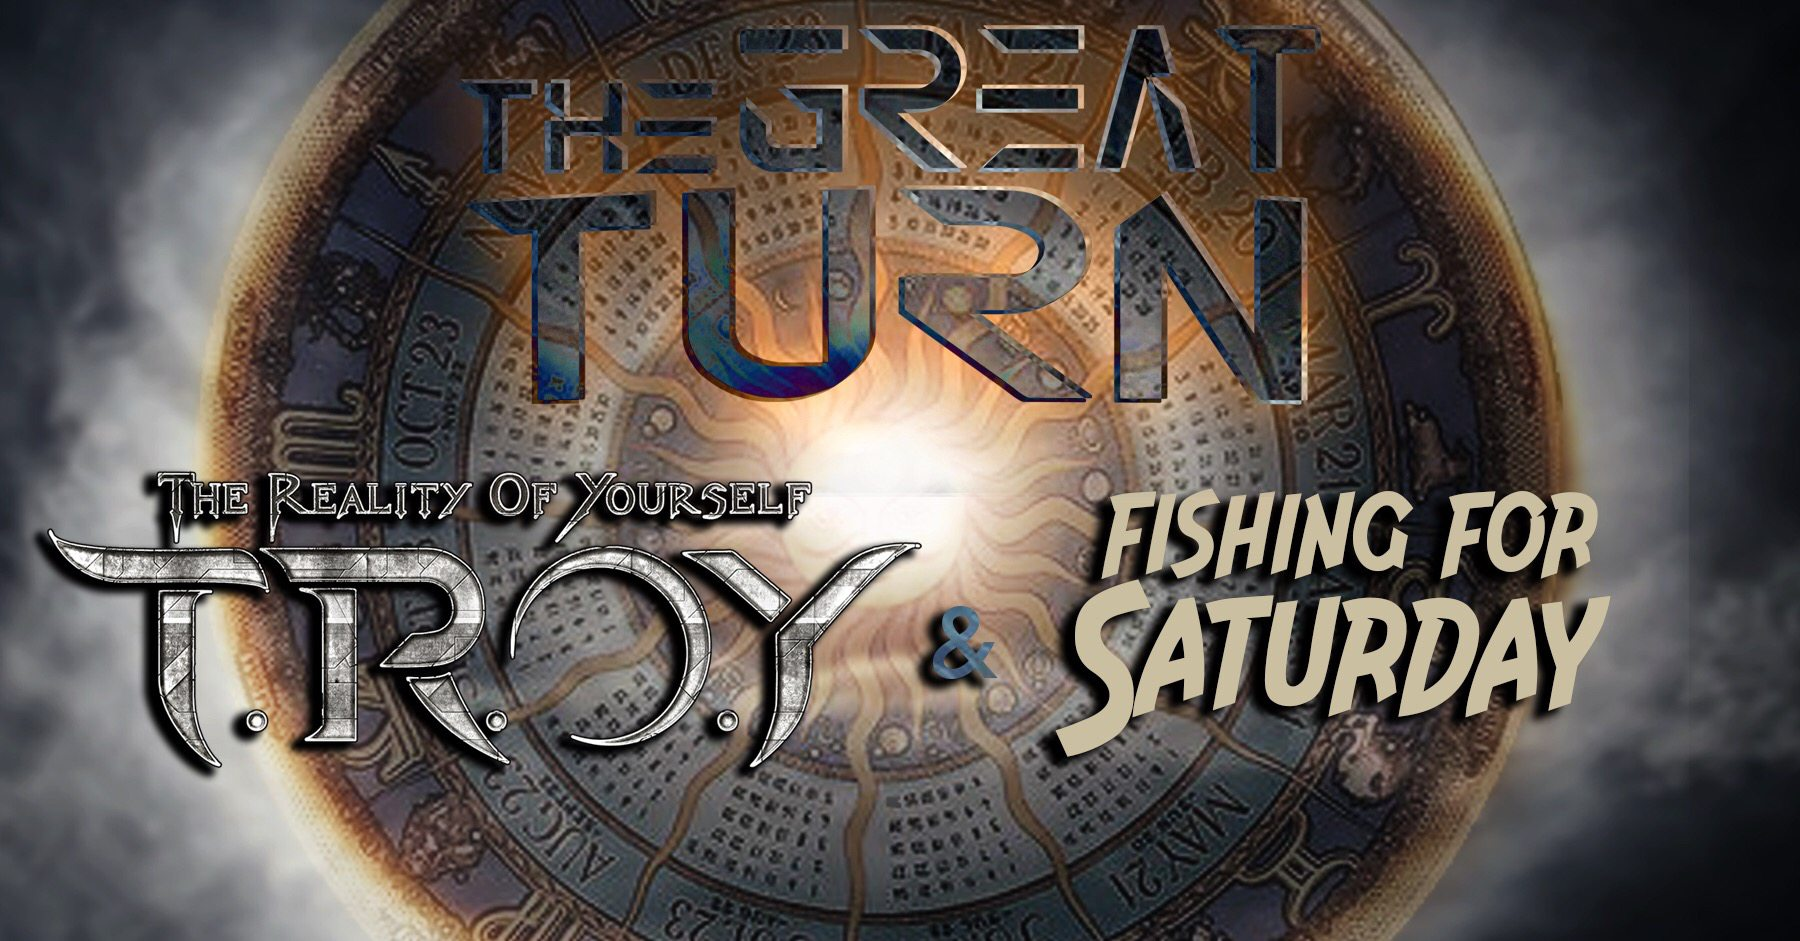 See TROY / Fishing For Saturday / Chris May: The Great Turn at Krave in Springfield, MO